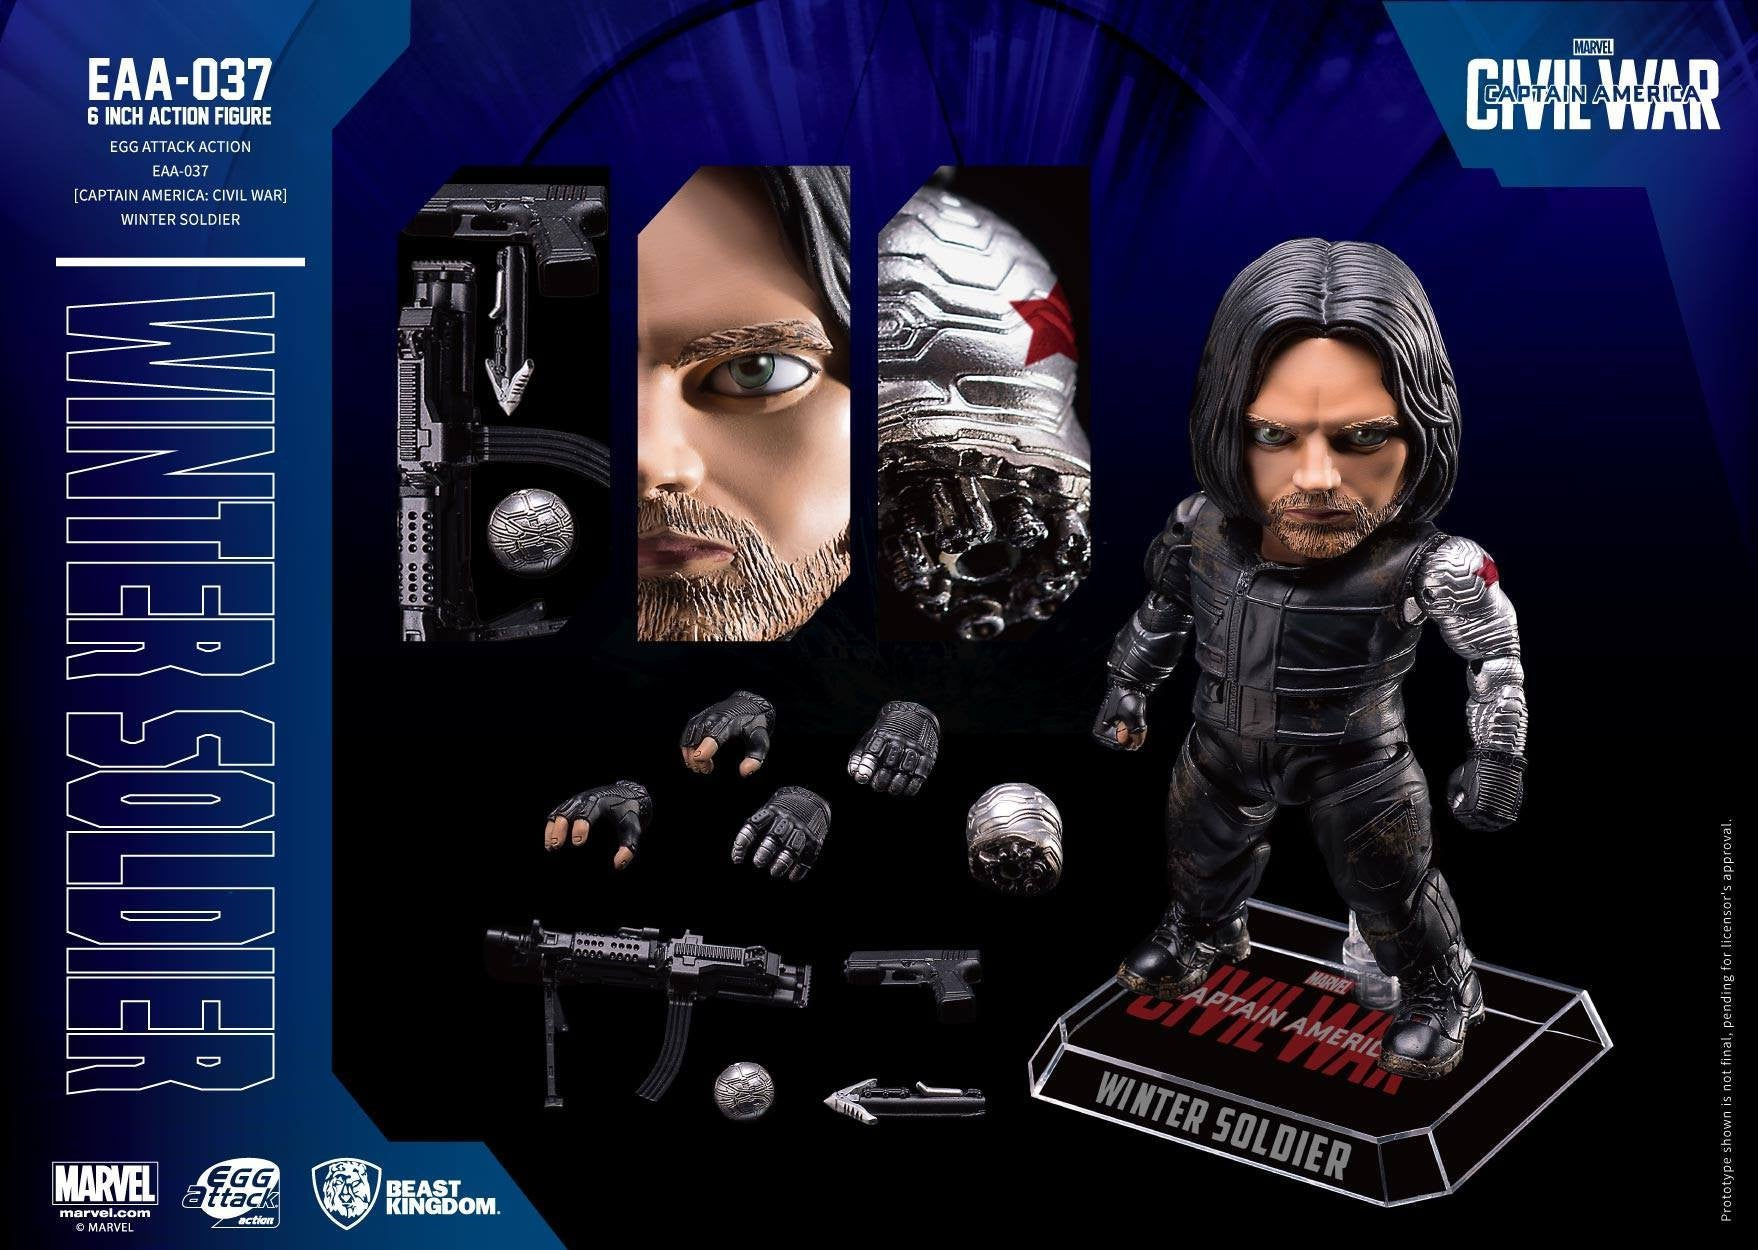 Beast Kingdom - Egg Attack Action EAA-037 - Captain America: Civil War - Winter Soldier - Marvelous Toys - 4